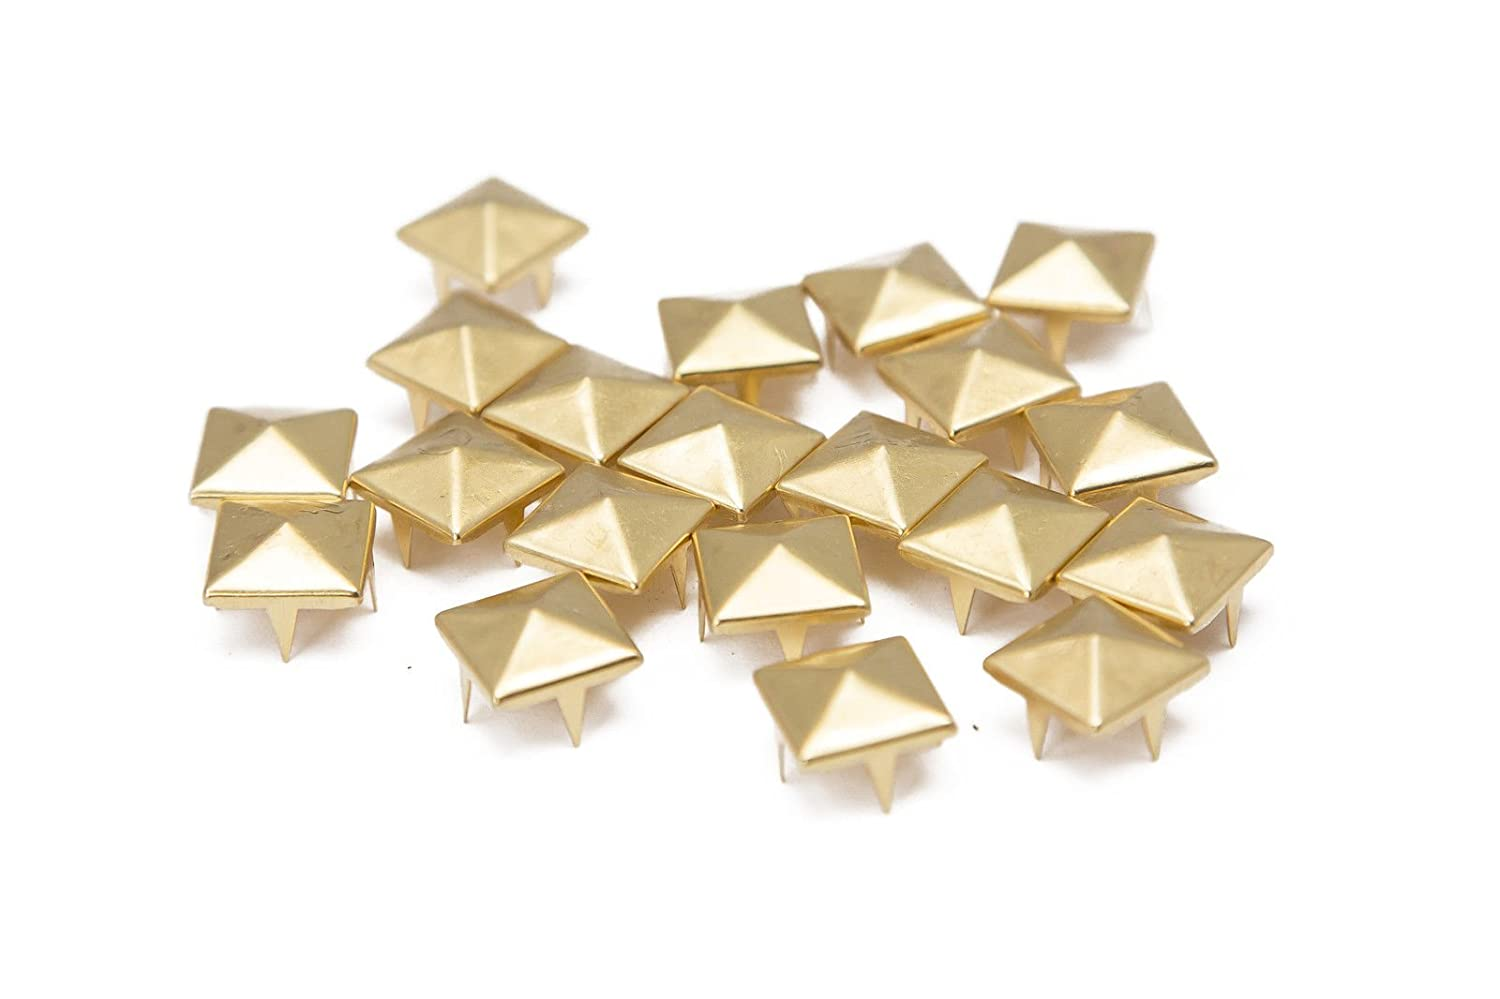 Trimming Shop 100 Pieces Gold Pyramid Studs Hand Pressed Or Machine Set Rivets Suitable For Leather Crafting Decorating And Repairing 6mm   B01CTKKVJS